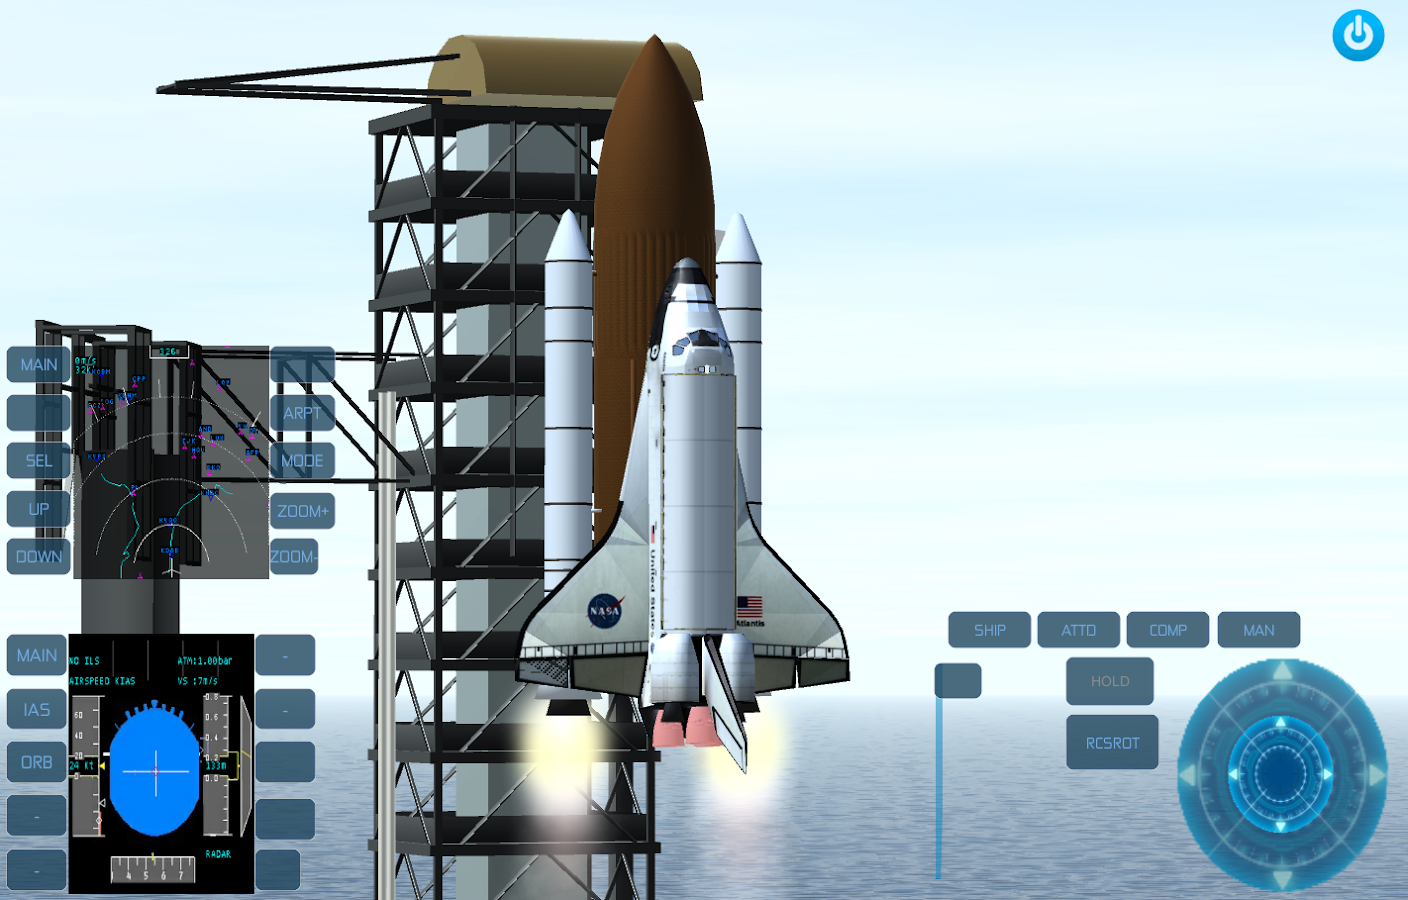 space shuttle simulator app - photo #8